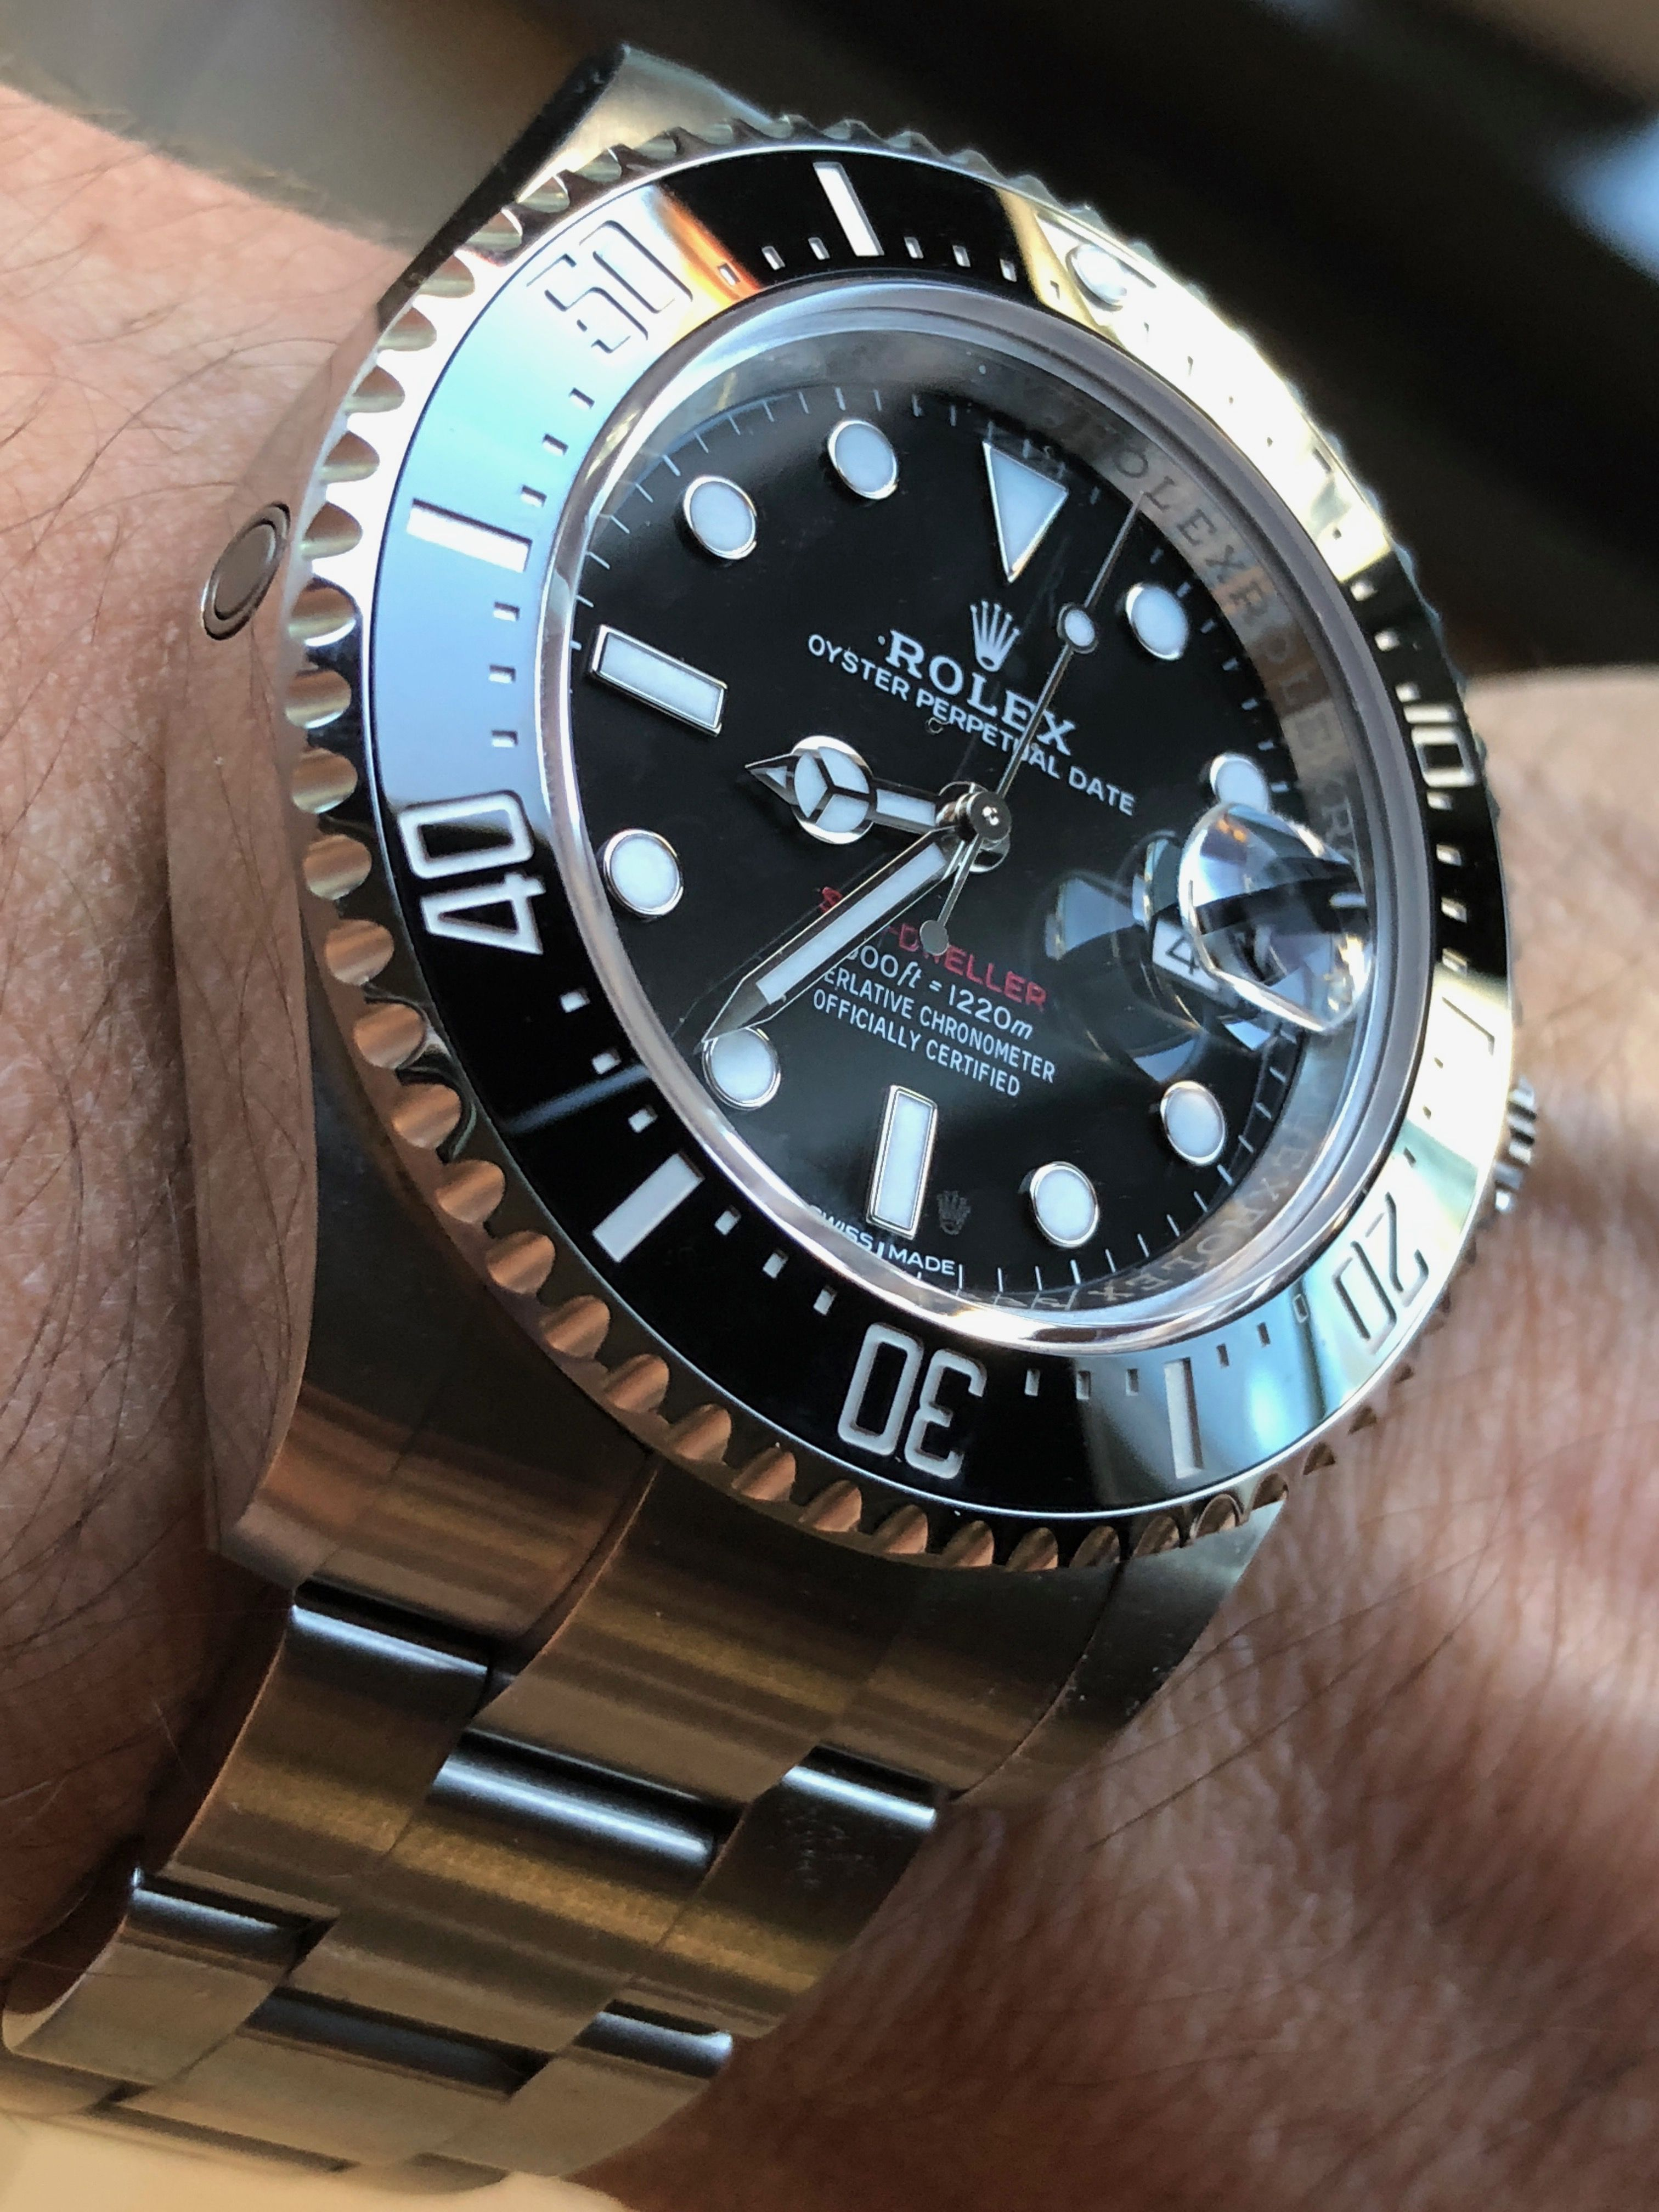 857f52142a82 D-Blue SD vs. SD43 50th...One   Why! - Page 2 - Rolex Forums - Rolex ...